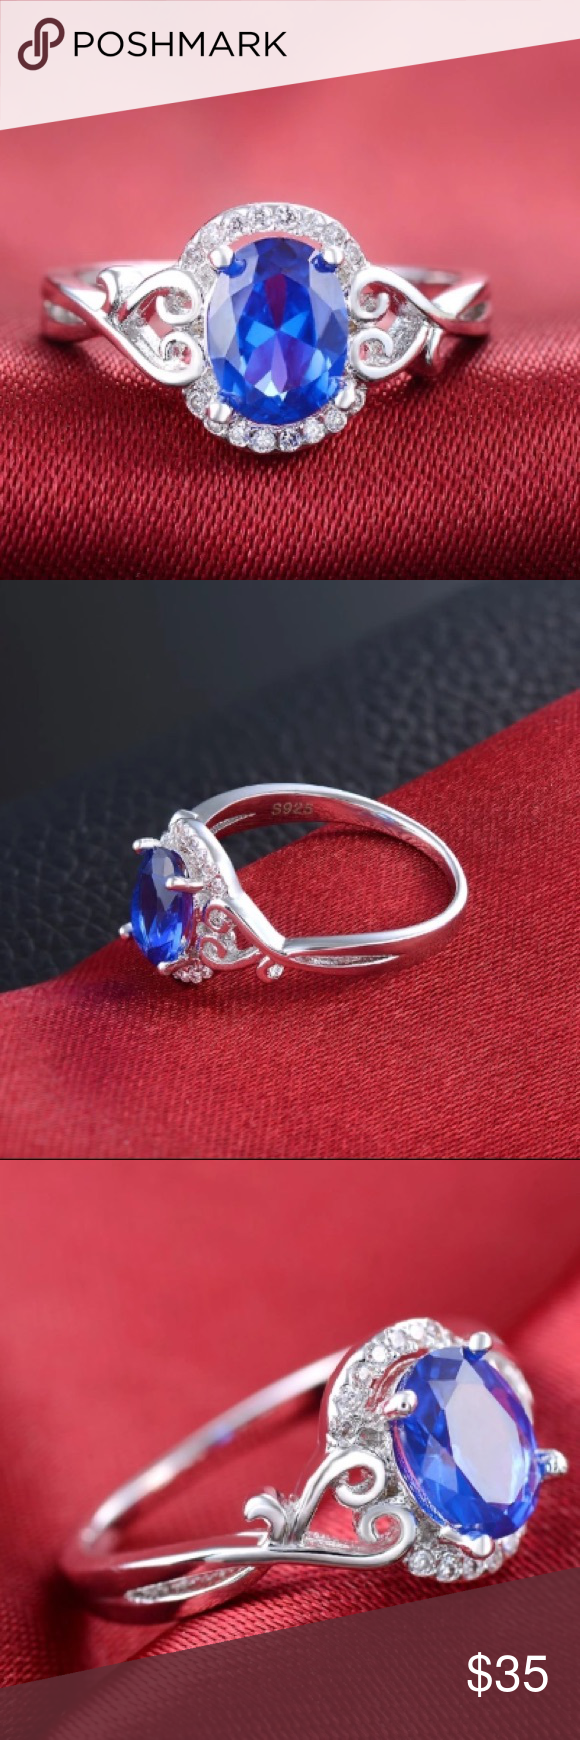 (Size 6) blue wedding ring Brand new. White gold plated / s925 stamps ring fashion Jewelry Engagement Cubic Zircon Diamond for women still have size 6/7/8 price firm Jewelry Rings